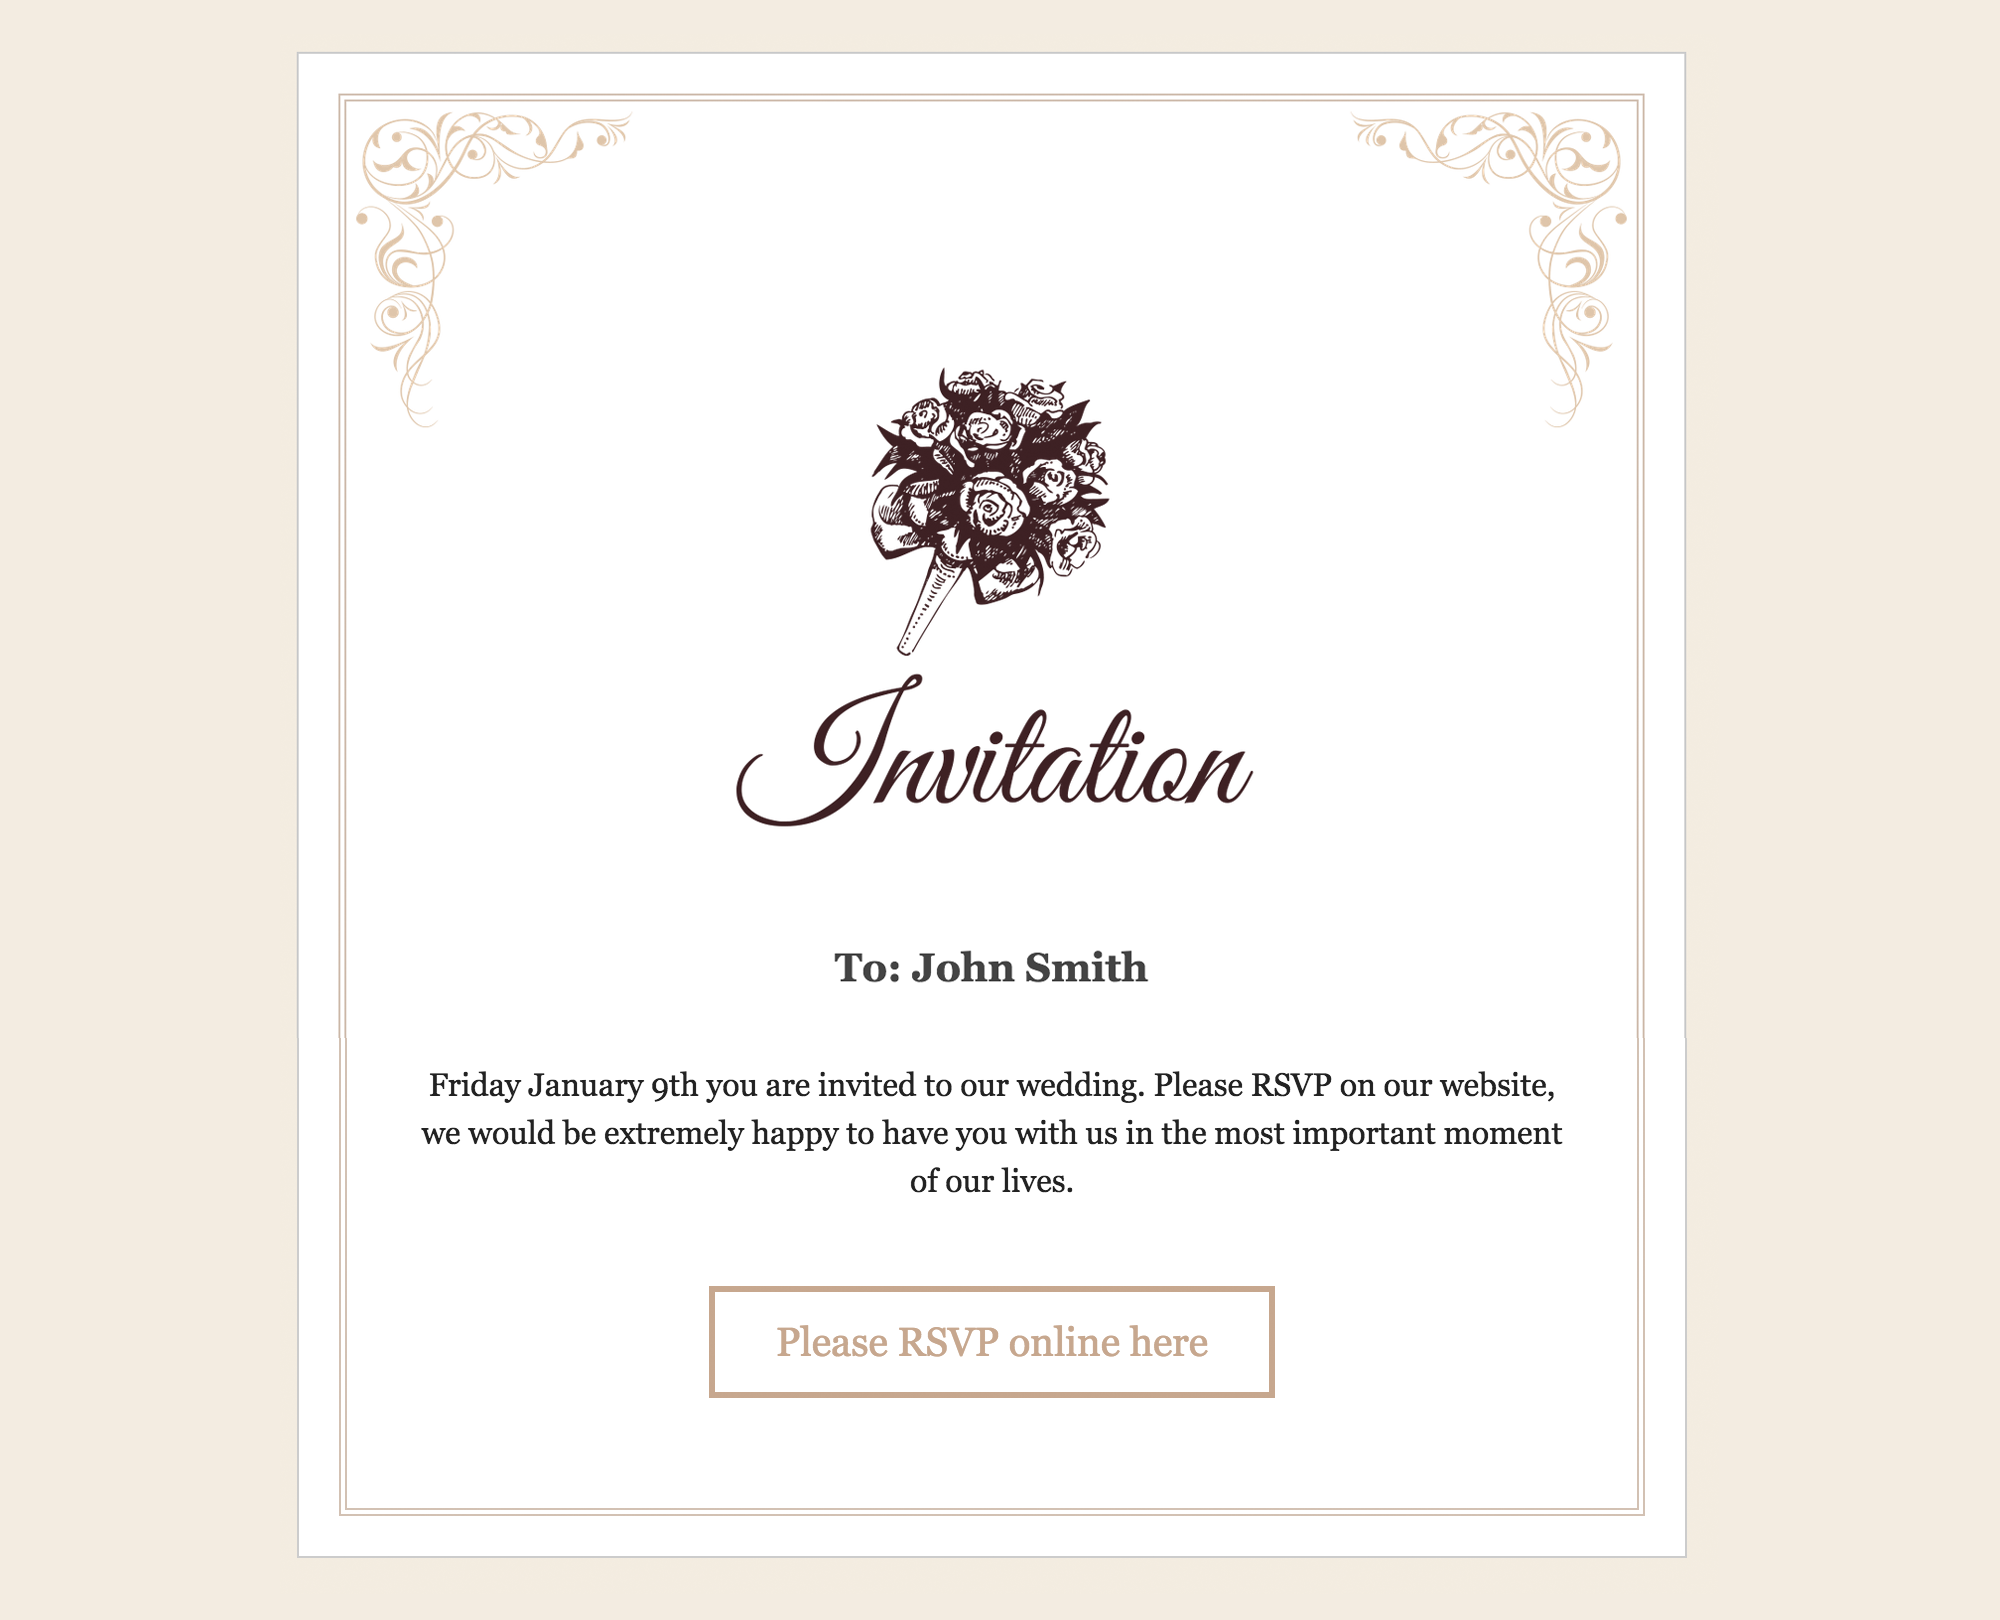 What Should Be Included In Wedding Invitation: RSVP And Wedding Invitation WordPress Plugin By